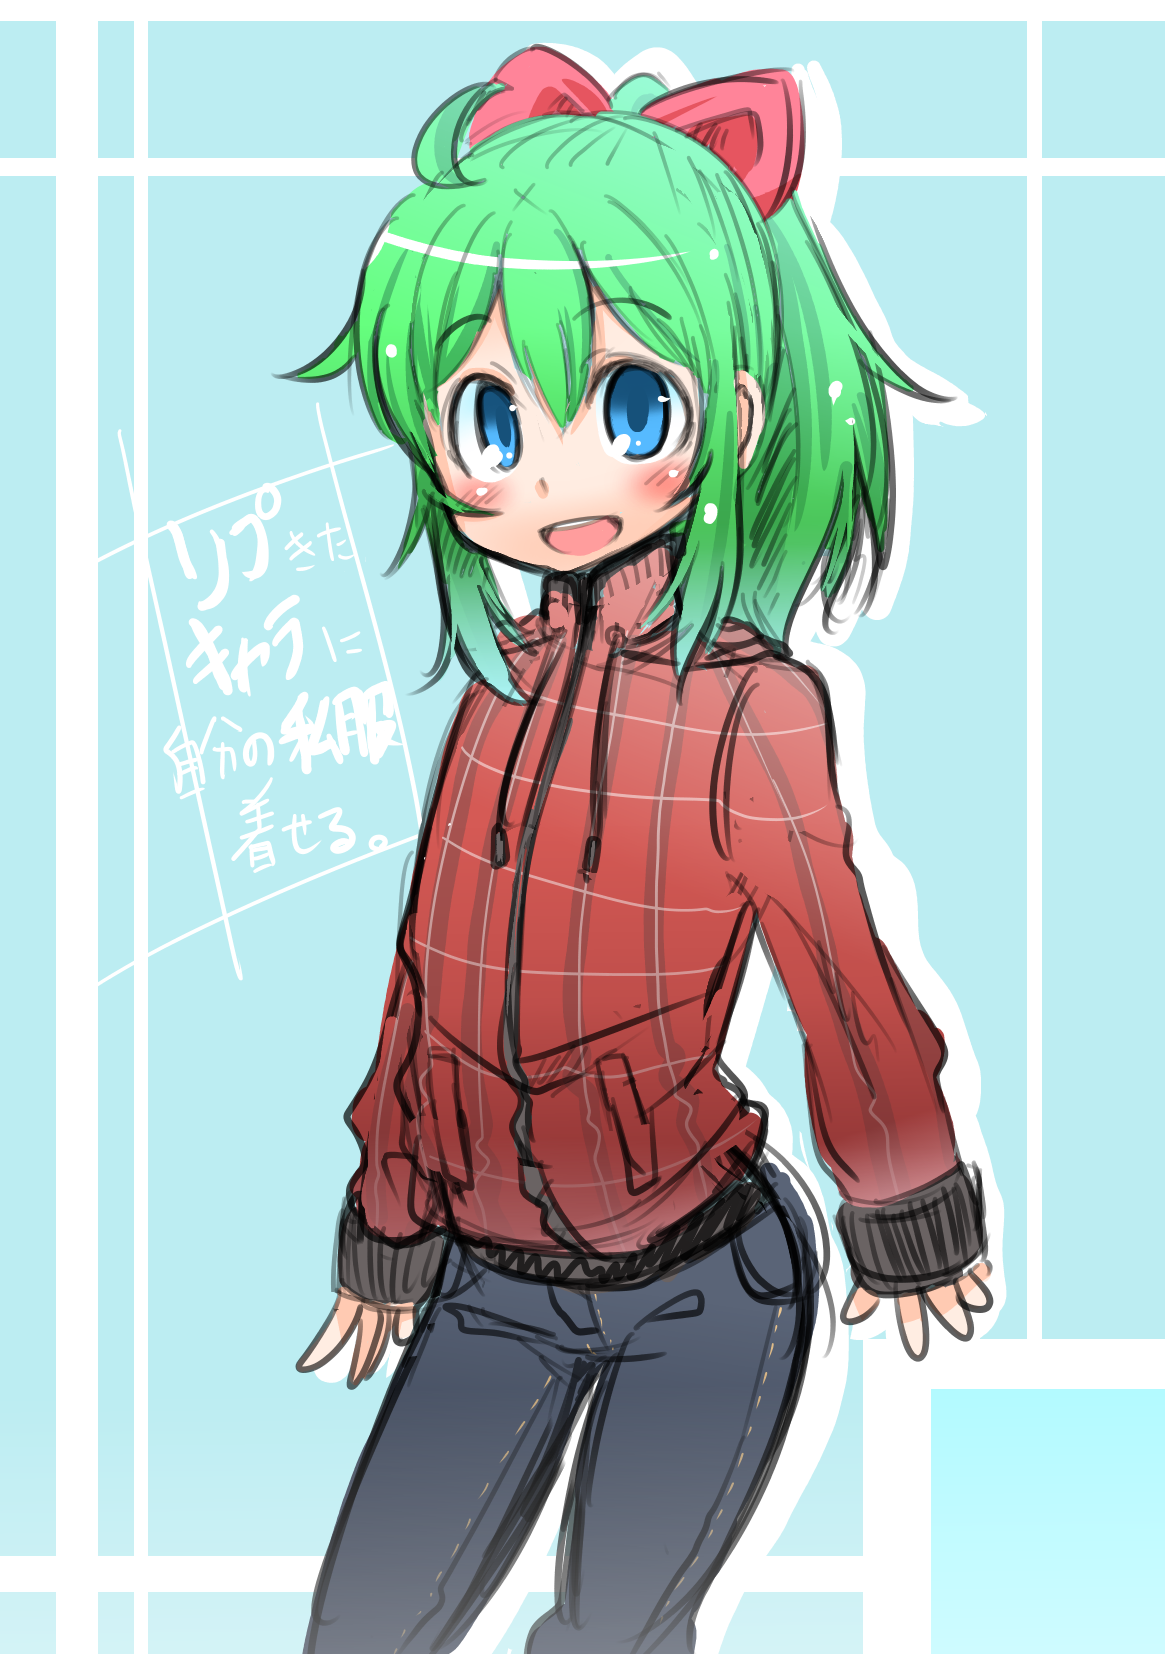 20150403192745652.png